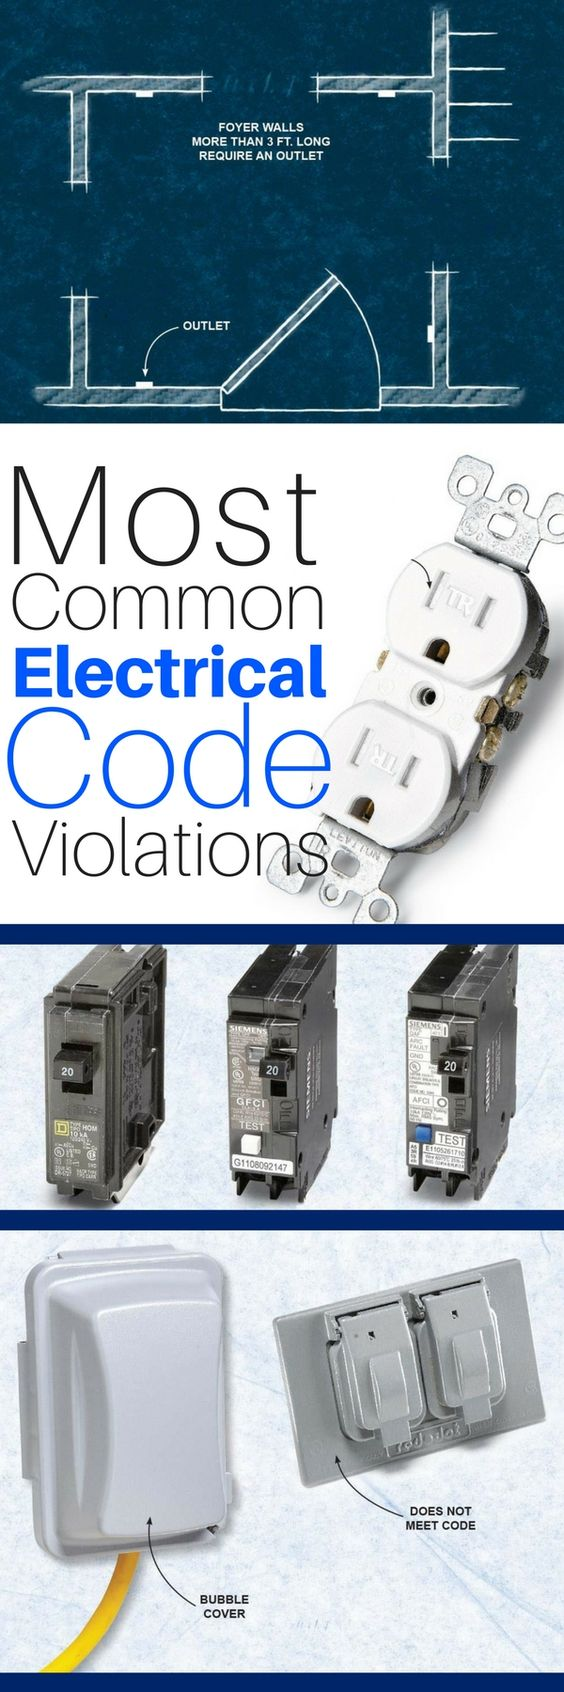 Keeping Your House Up To Code Jm Electric Inc Wiring A Codes The National Electrical Nec While Some Common Mistakes Violate That Have Been On Books For Years These Tips Clear Confusion